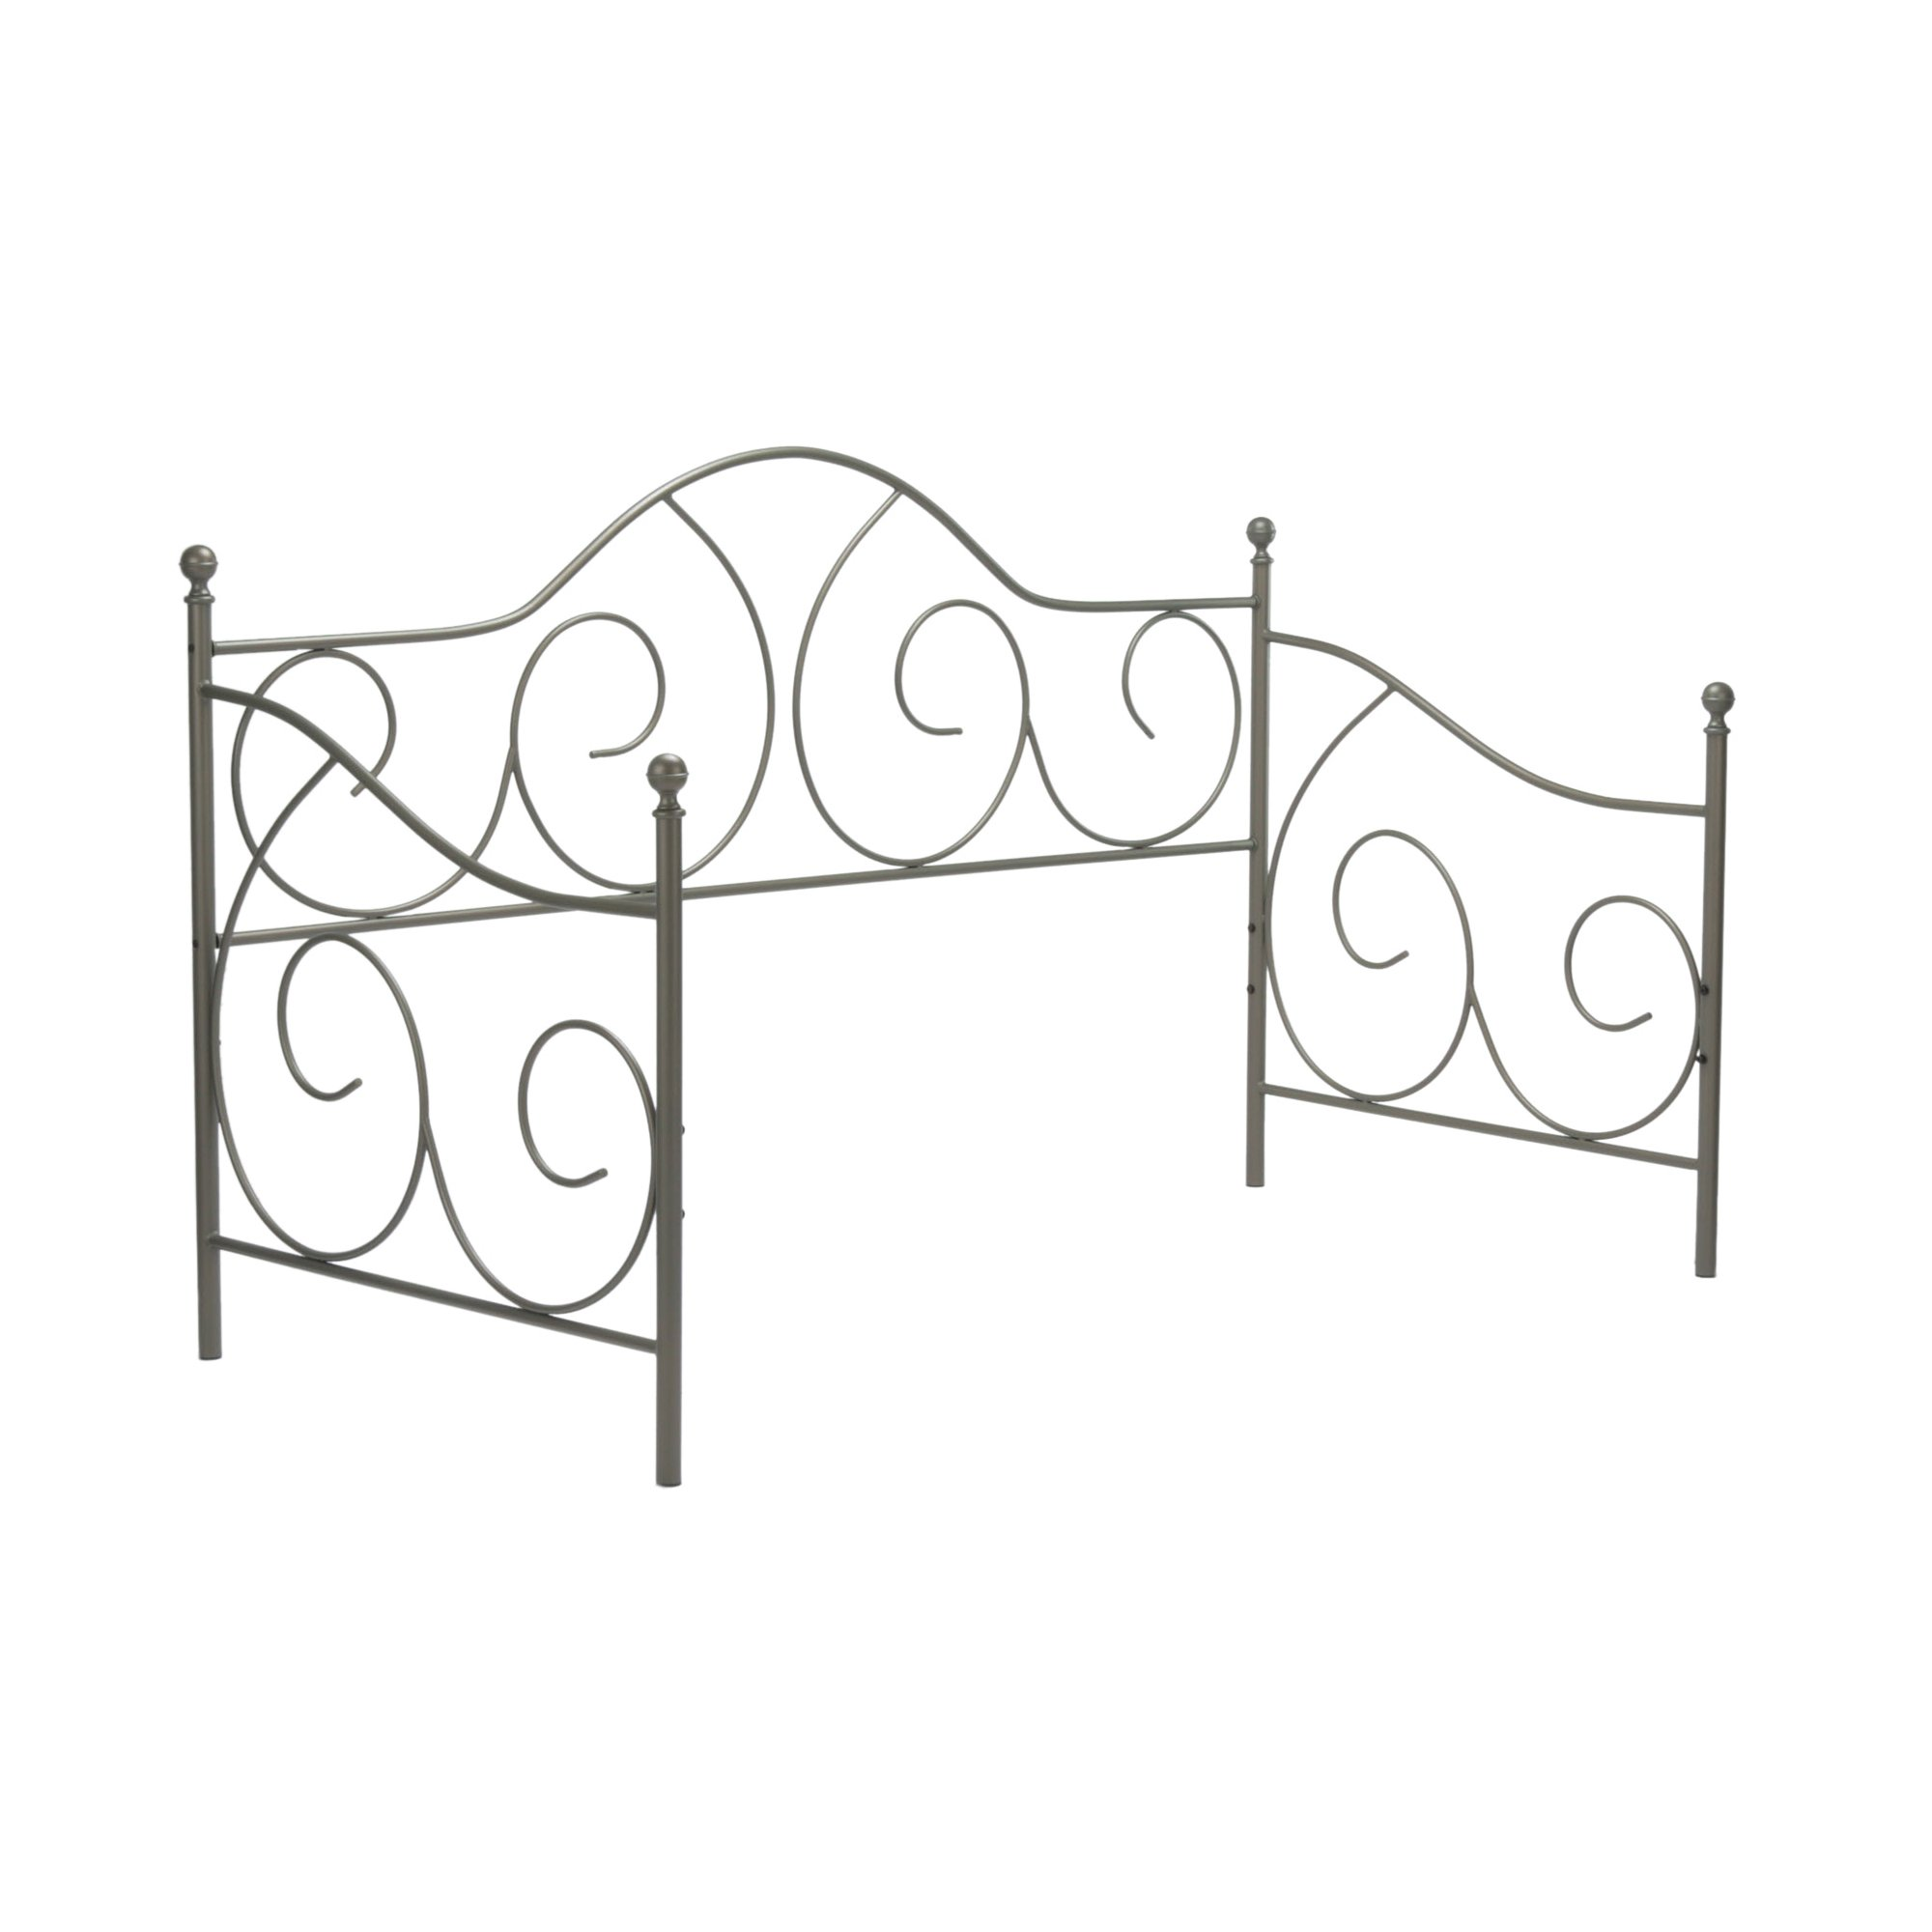 Caroline Complete Metal Daybed with Link Spring and Trundle Bed Pop-Up Frame, Flint Finish, Twin by Adjustables by Leggett & Platt (Image #4)